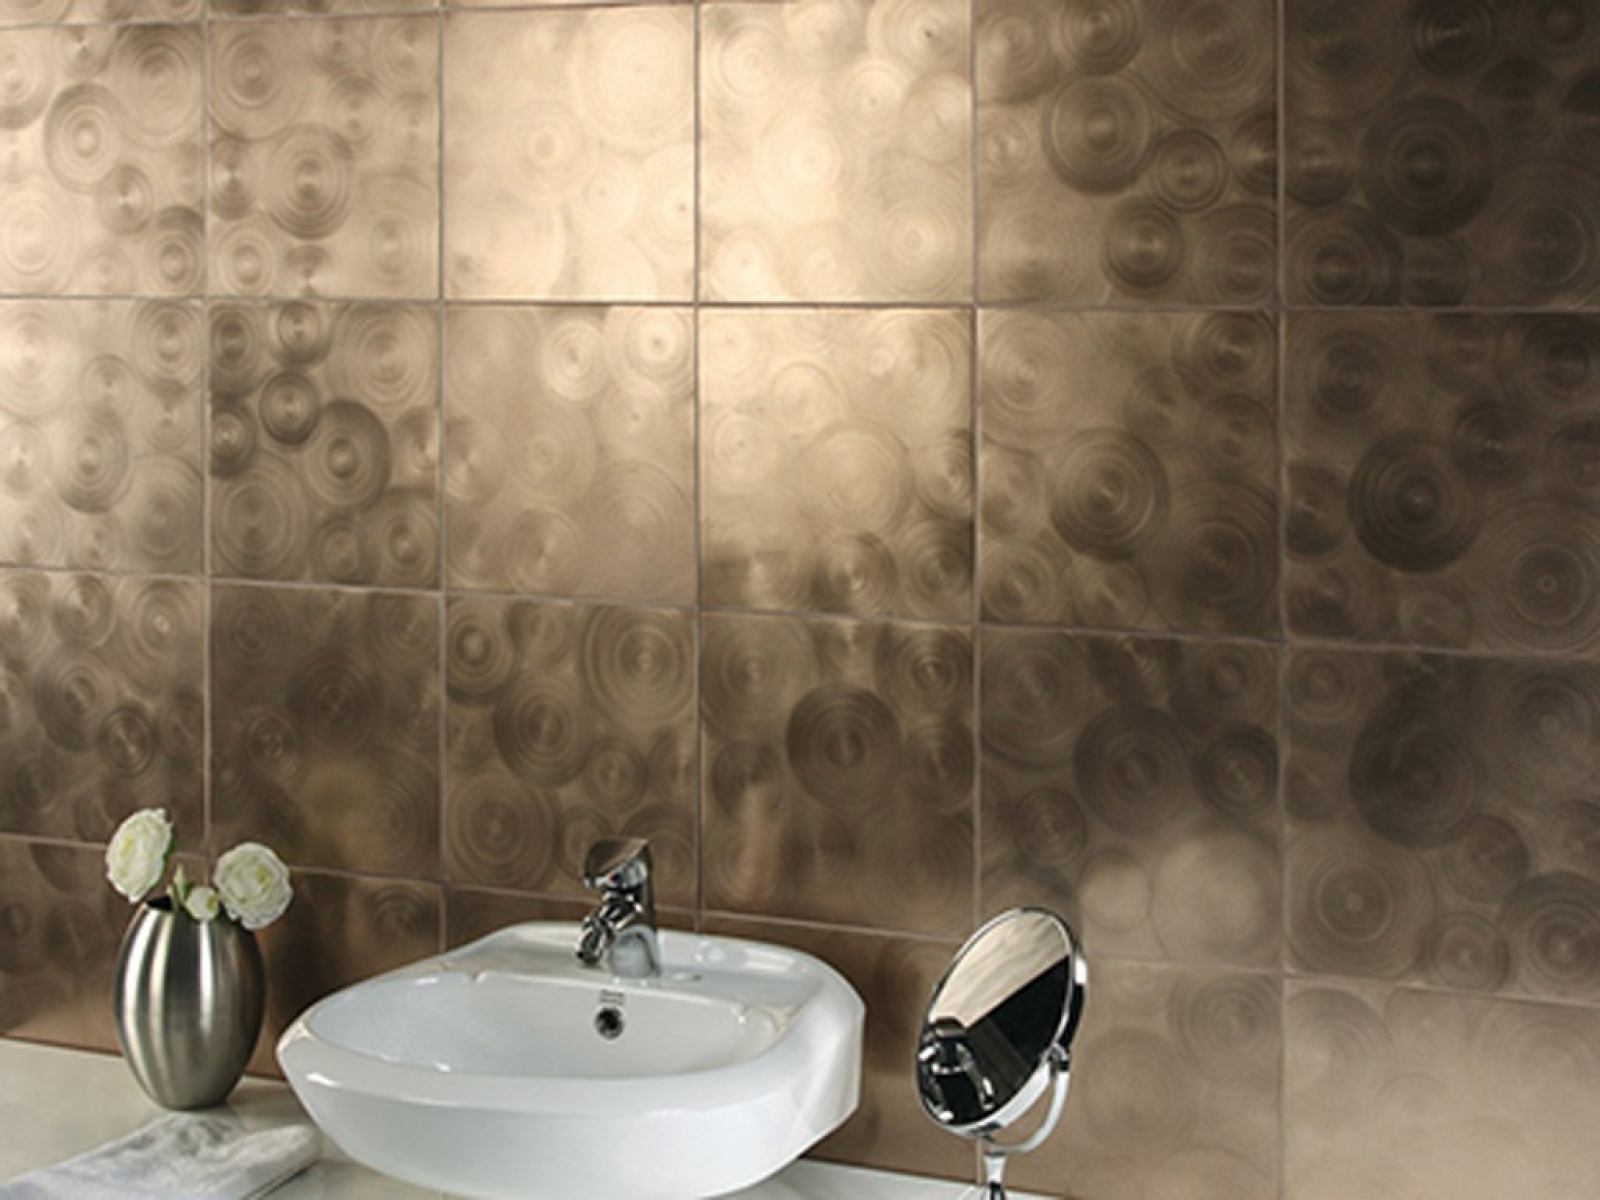 modern-bathroom-tile-design-with-metallic-bathroom-tile-idea-from-evit-modern-bathroom-floor-tile